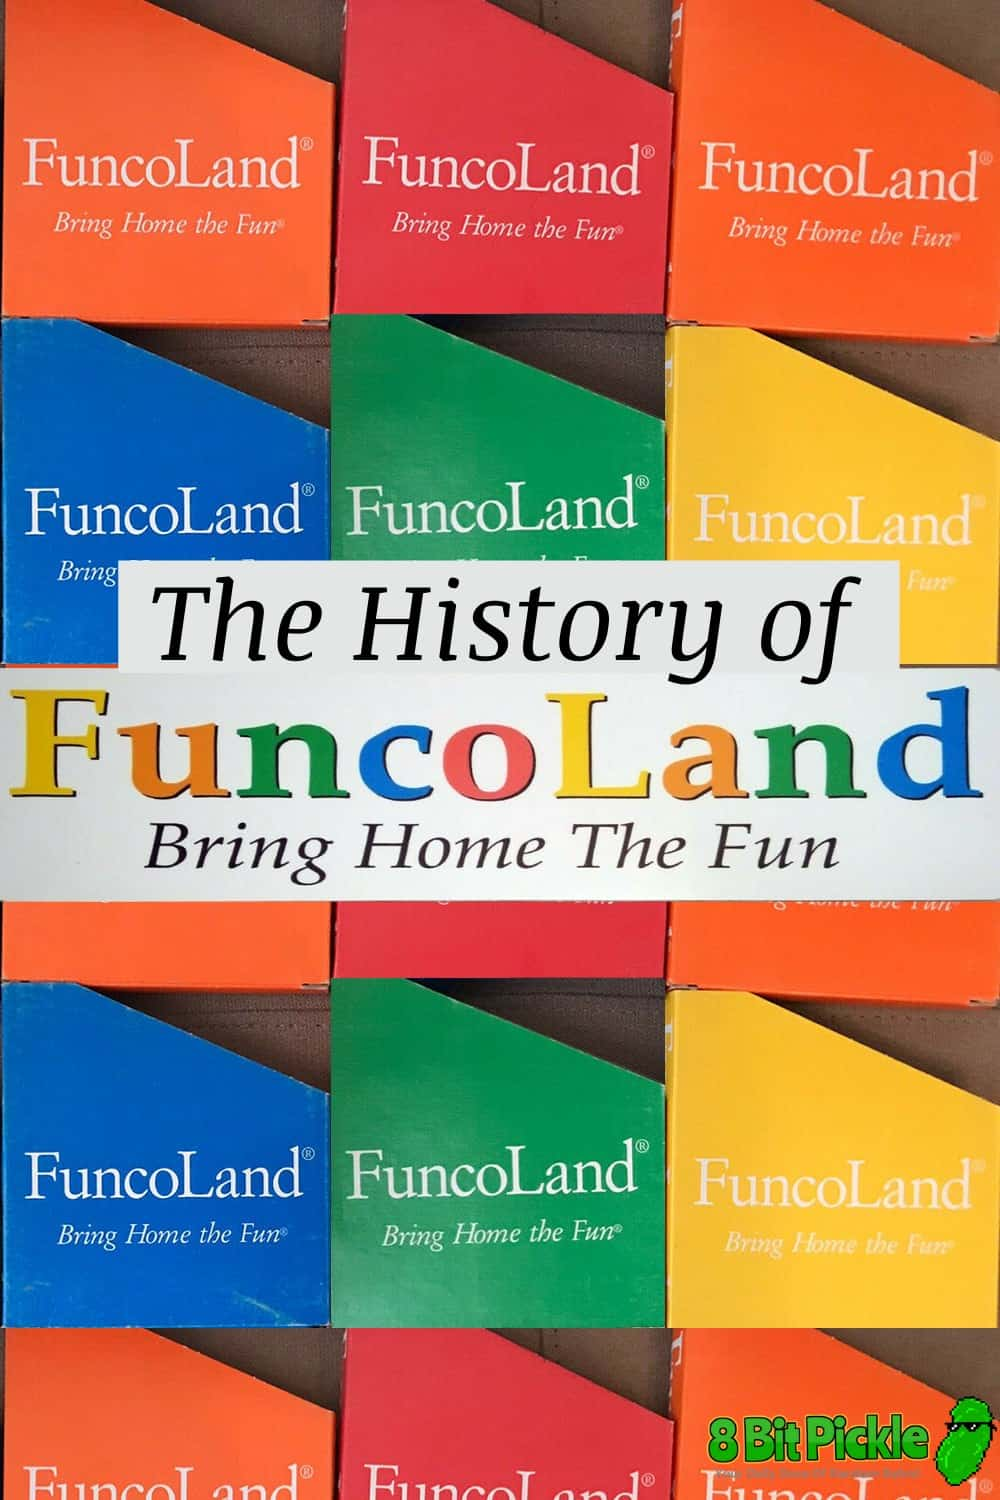 What Happened to FuncoLand